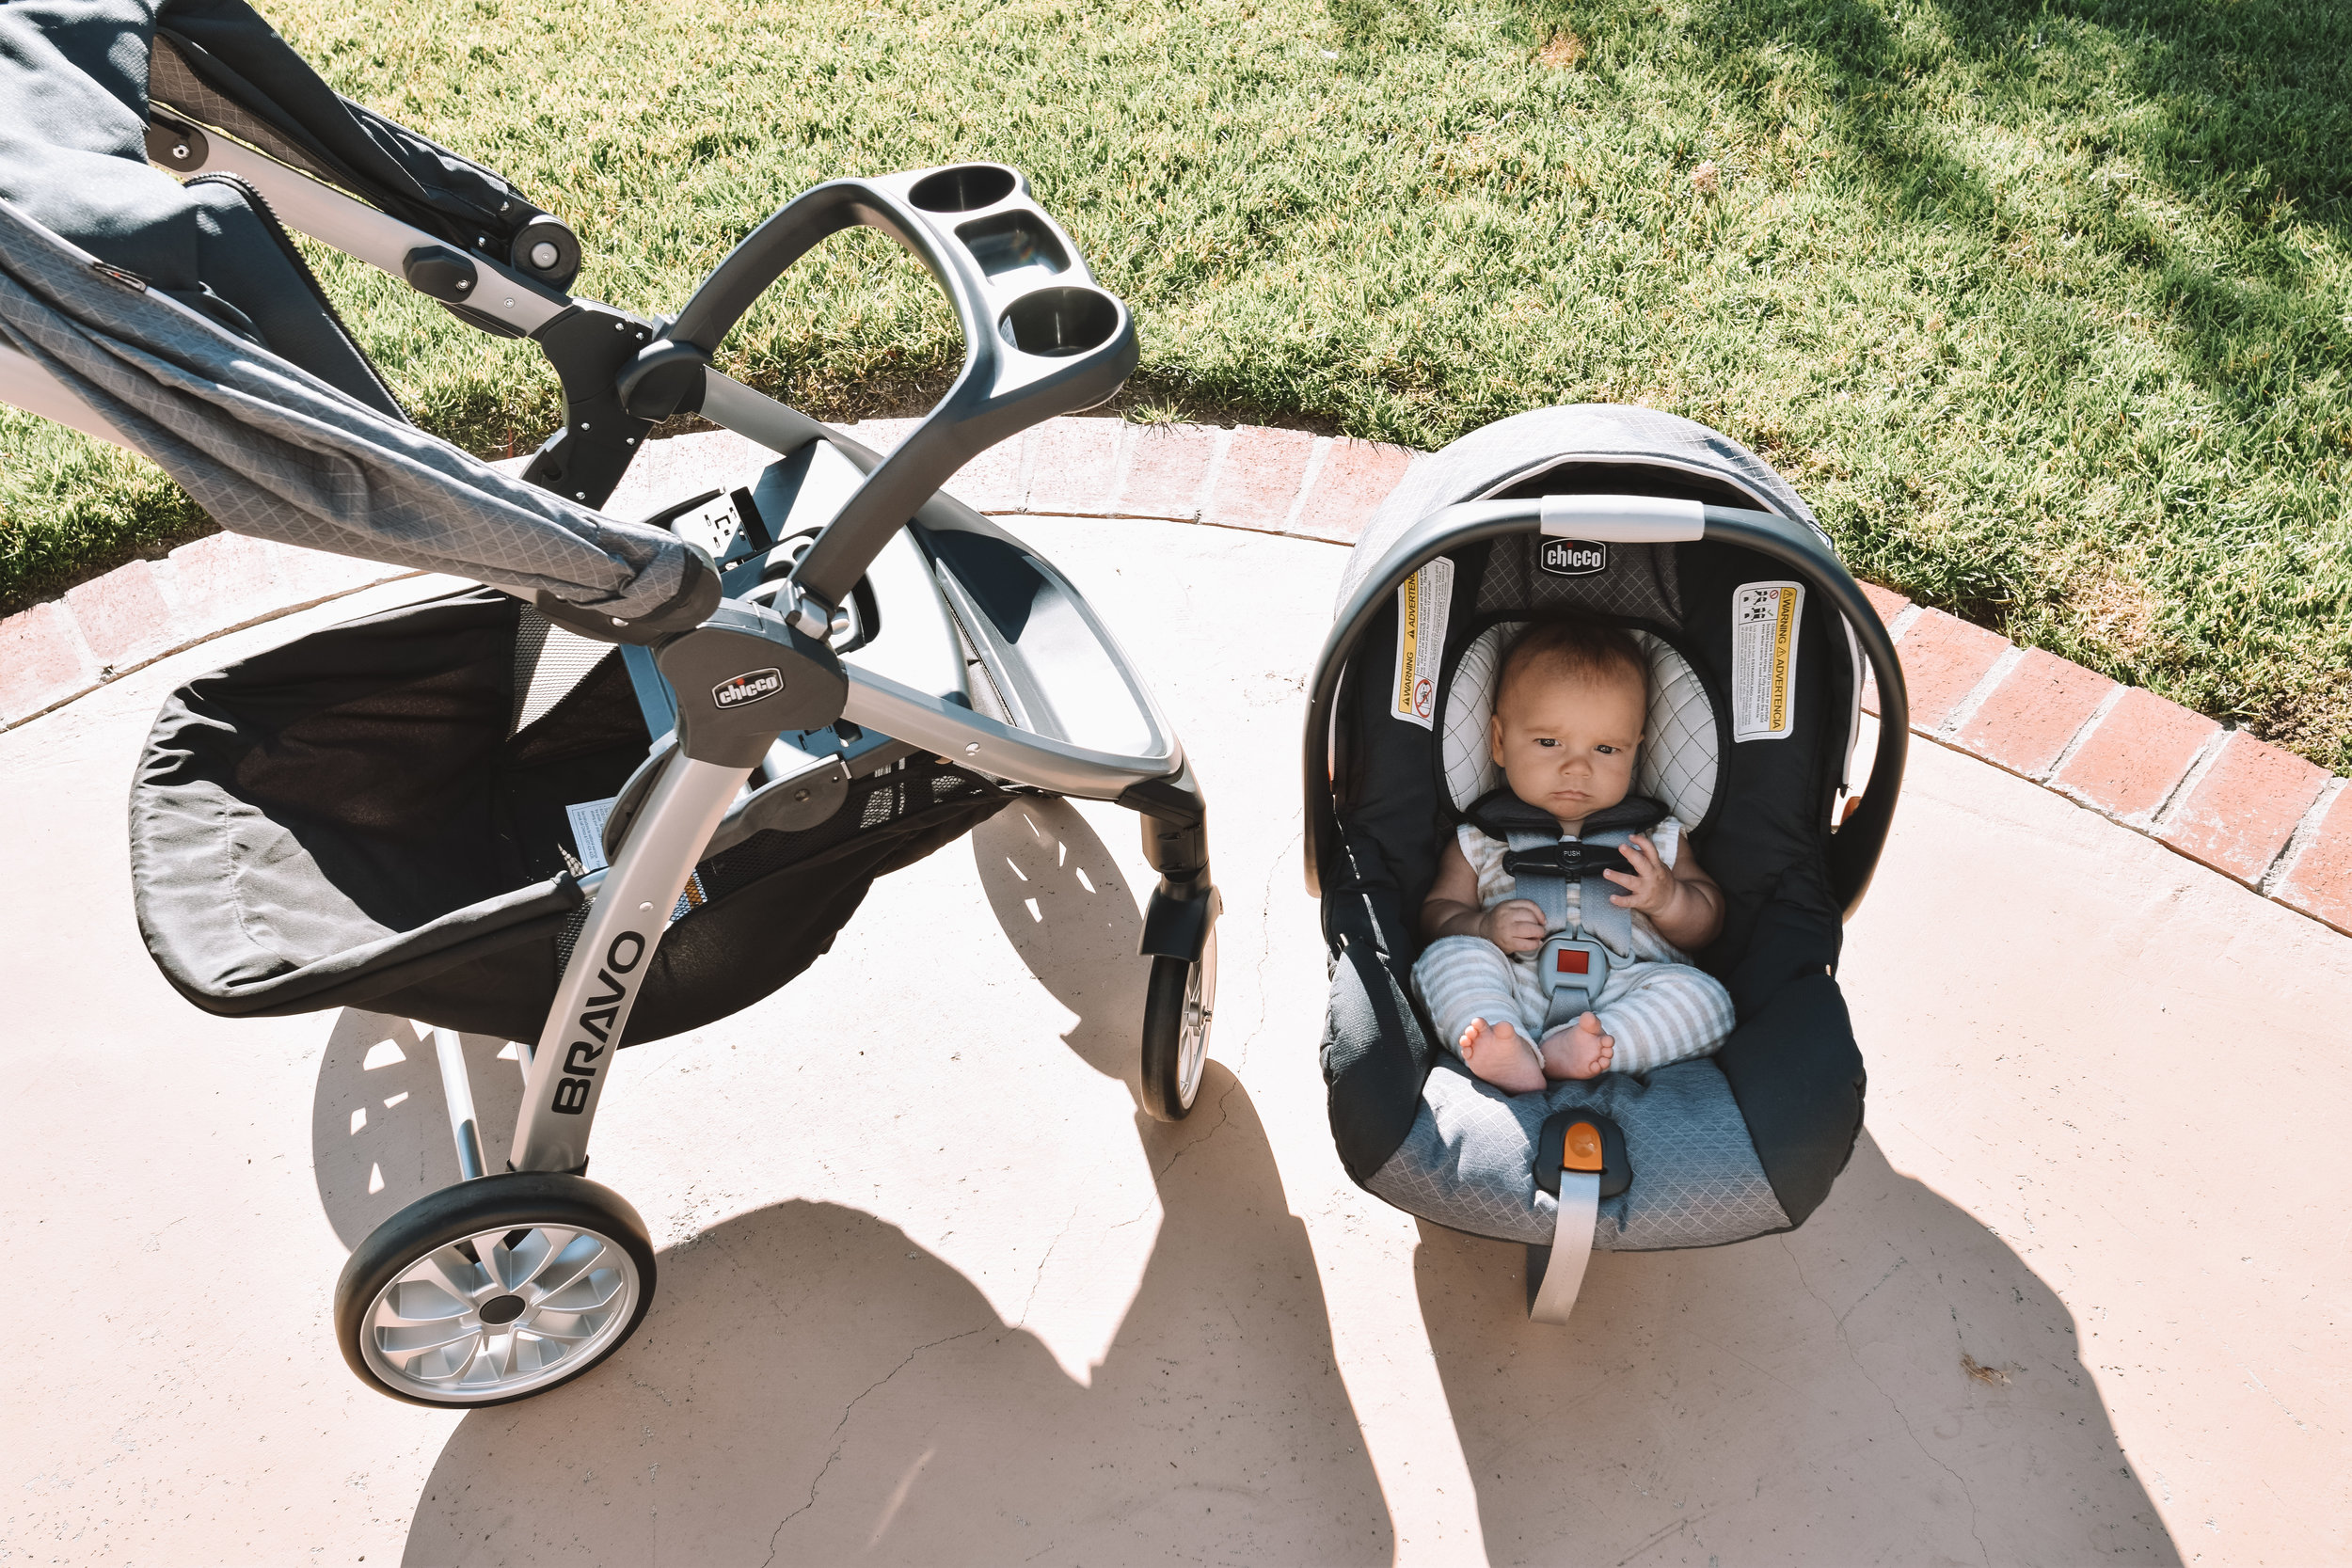 Chicco Bravo Review - A Stroller Made for Moms - Compact Convertible Stroller - The Overwhelmed Mommy Blogger